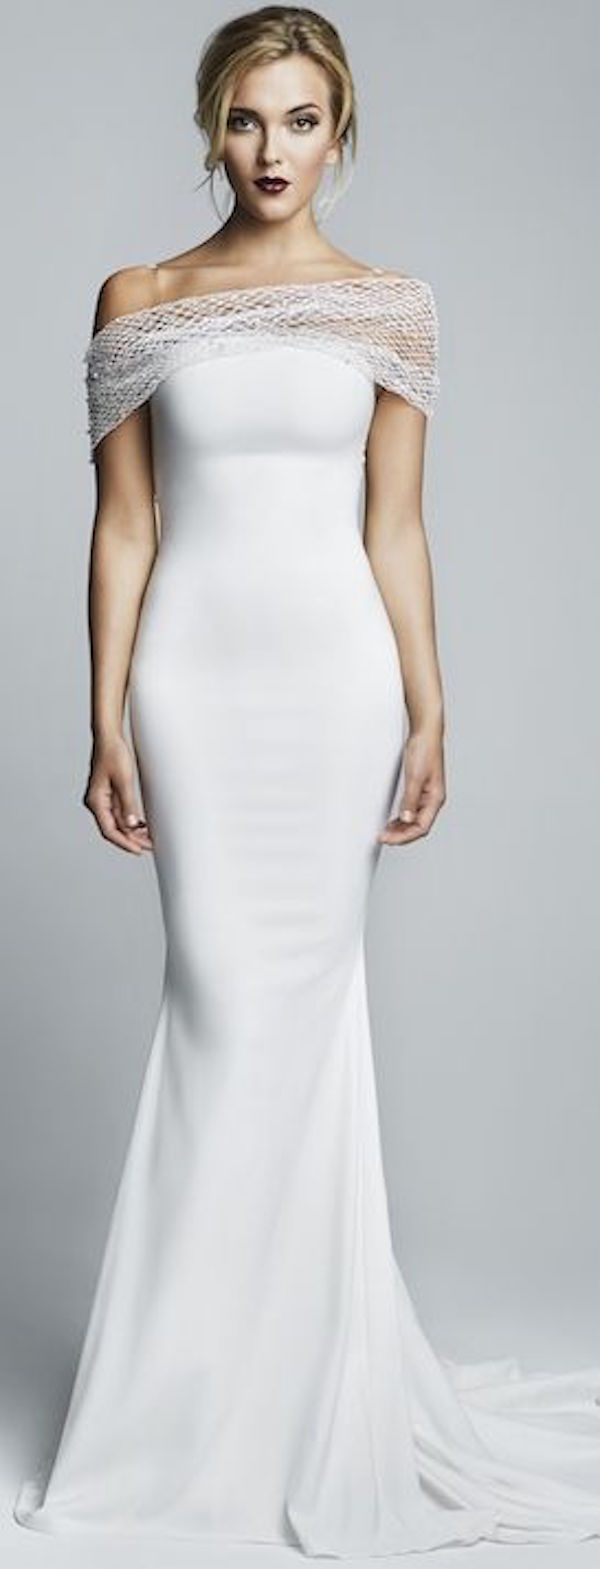 sheath-wedding-dress-13-091215ch